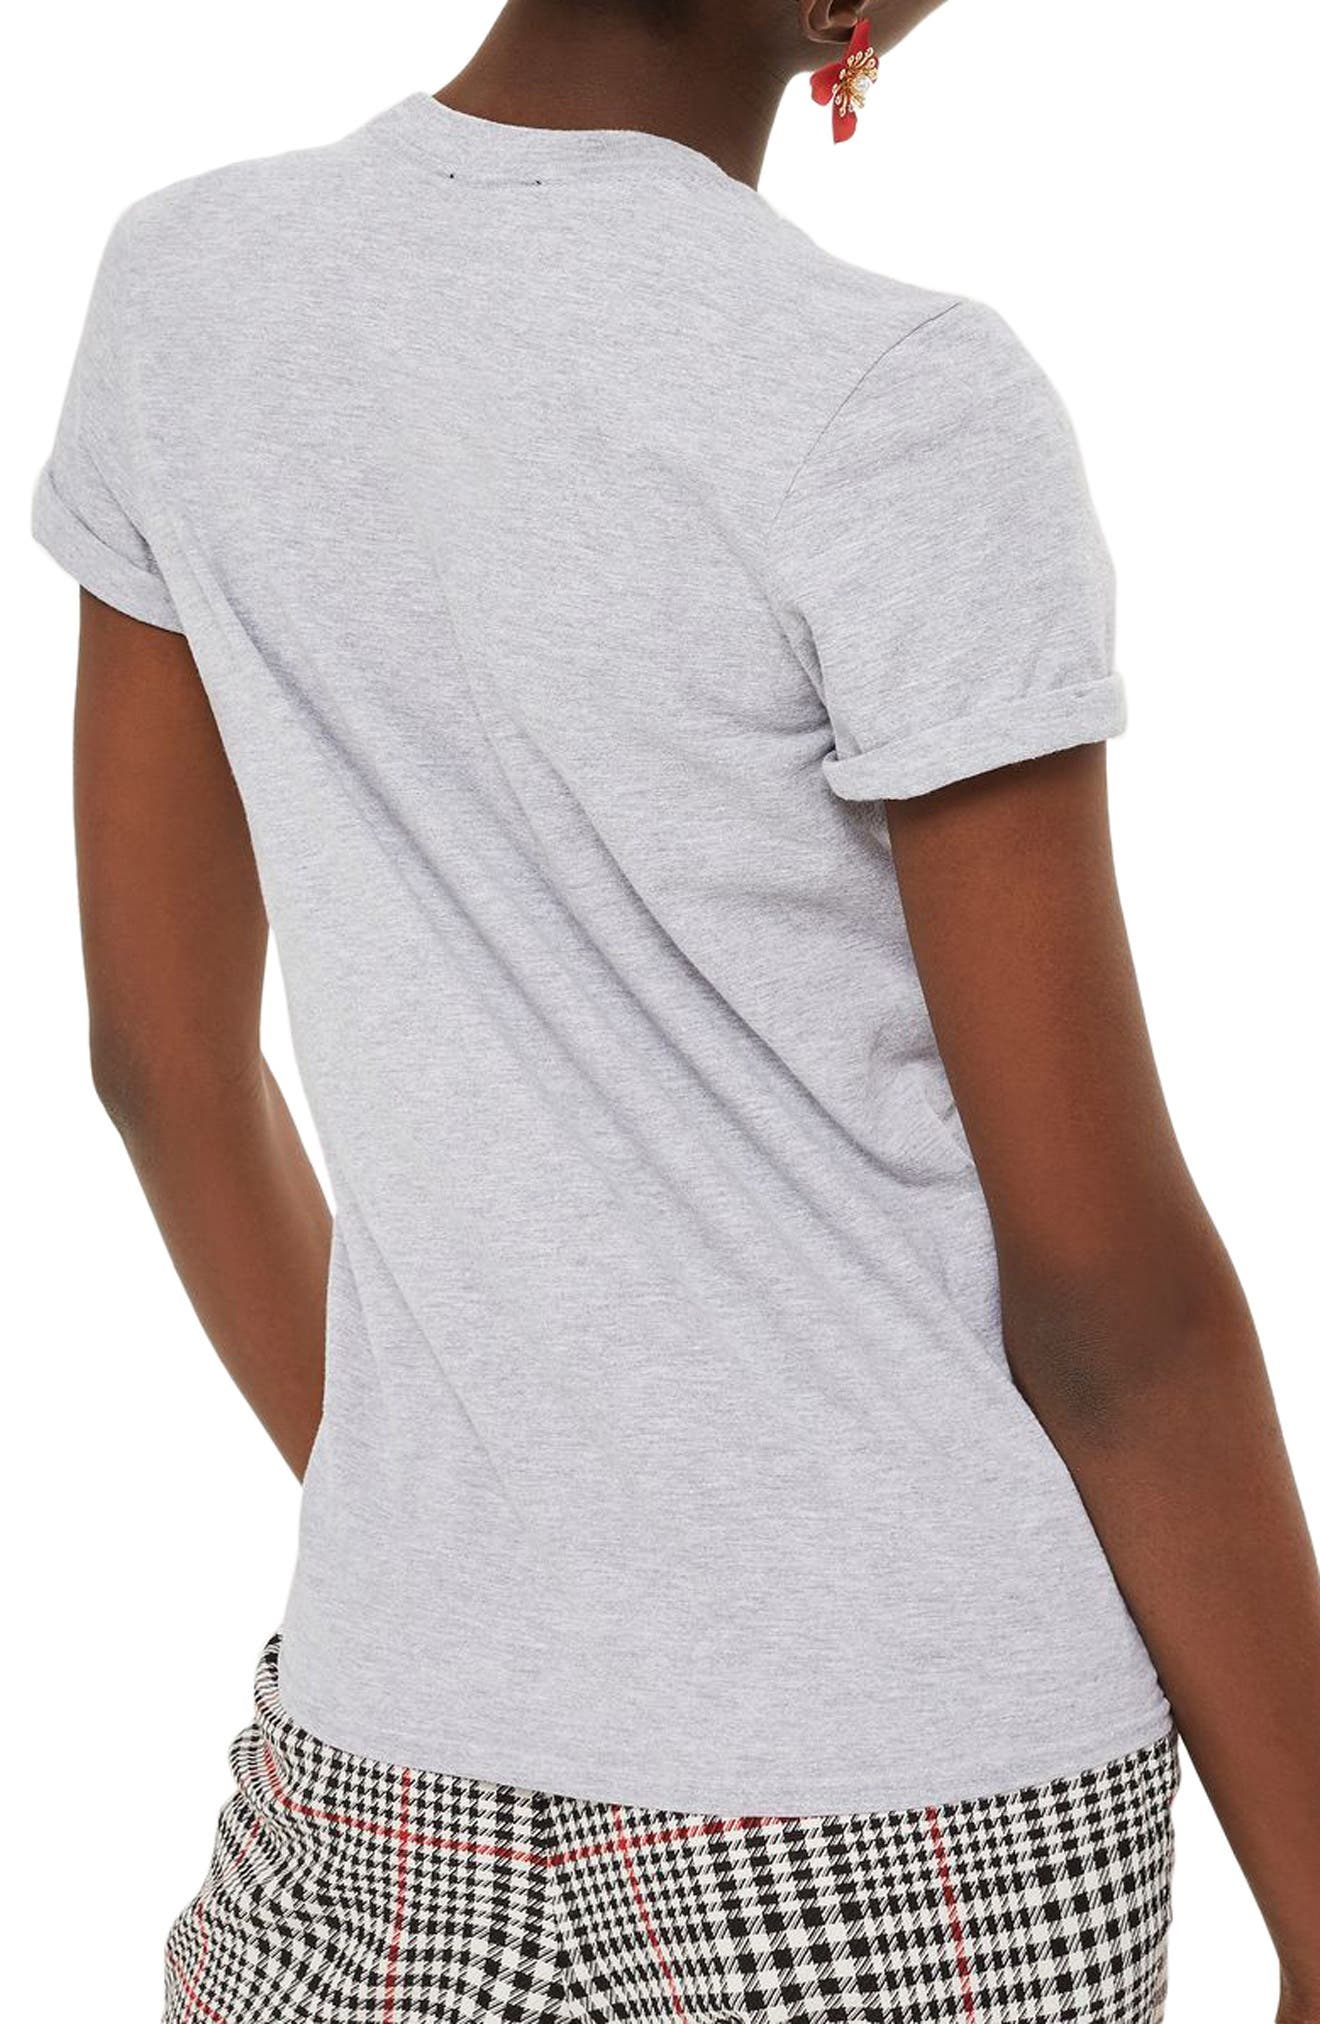 Amour Graphic Tee,                             Alternate thumbnail 2, color,                             Grey Multi